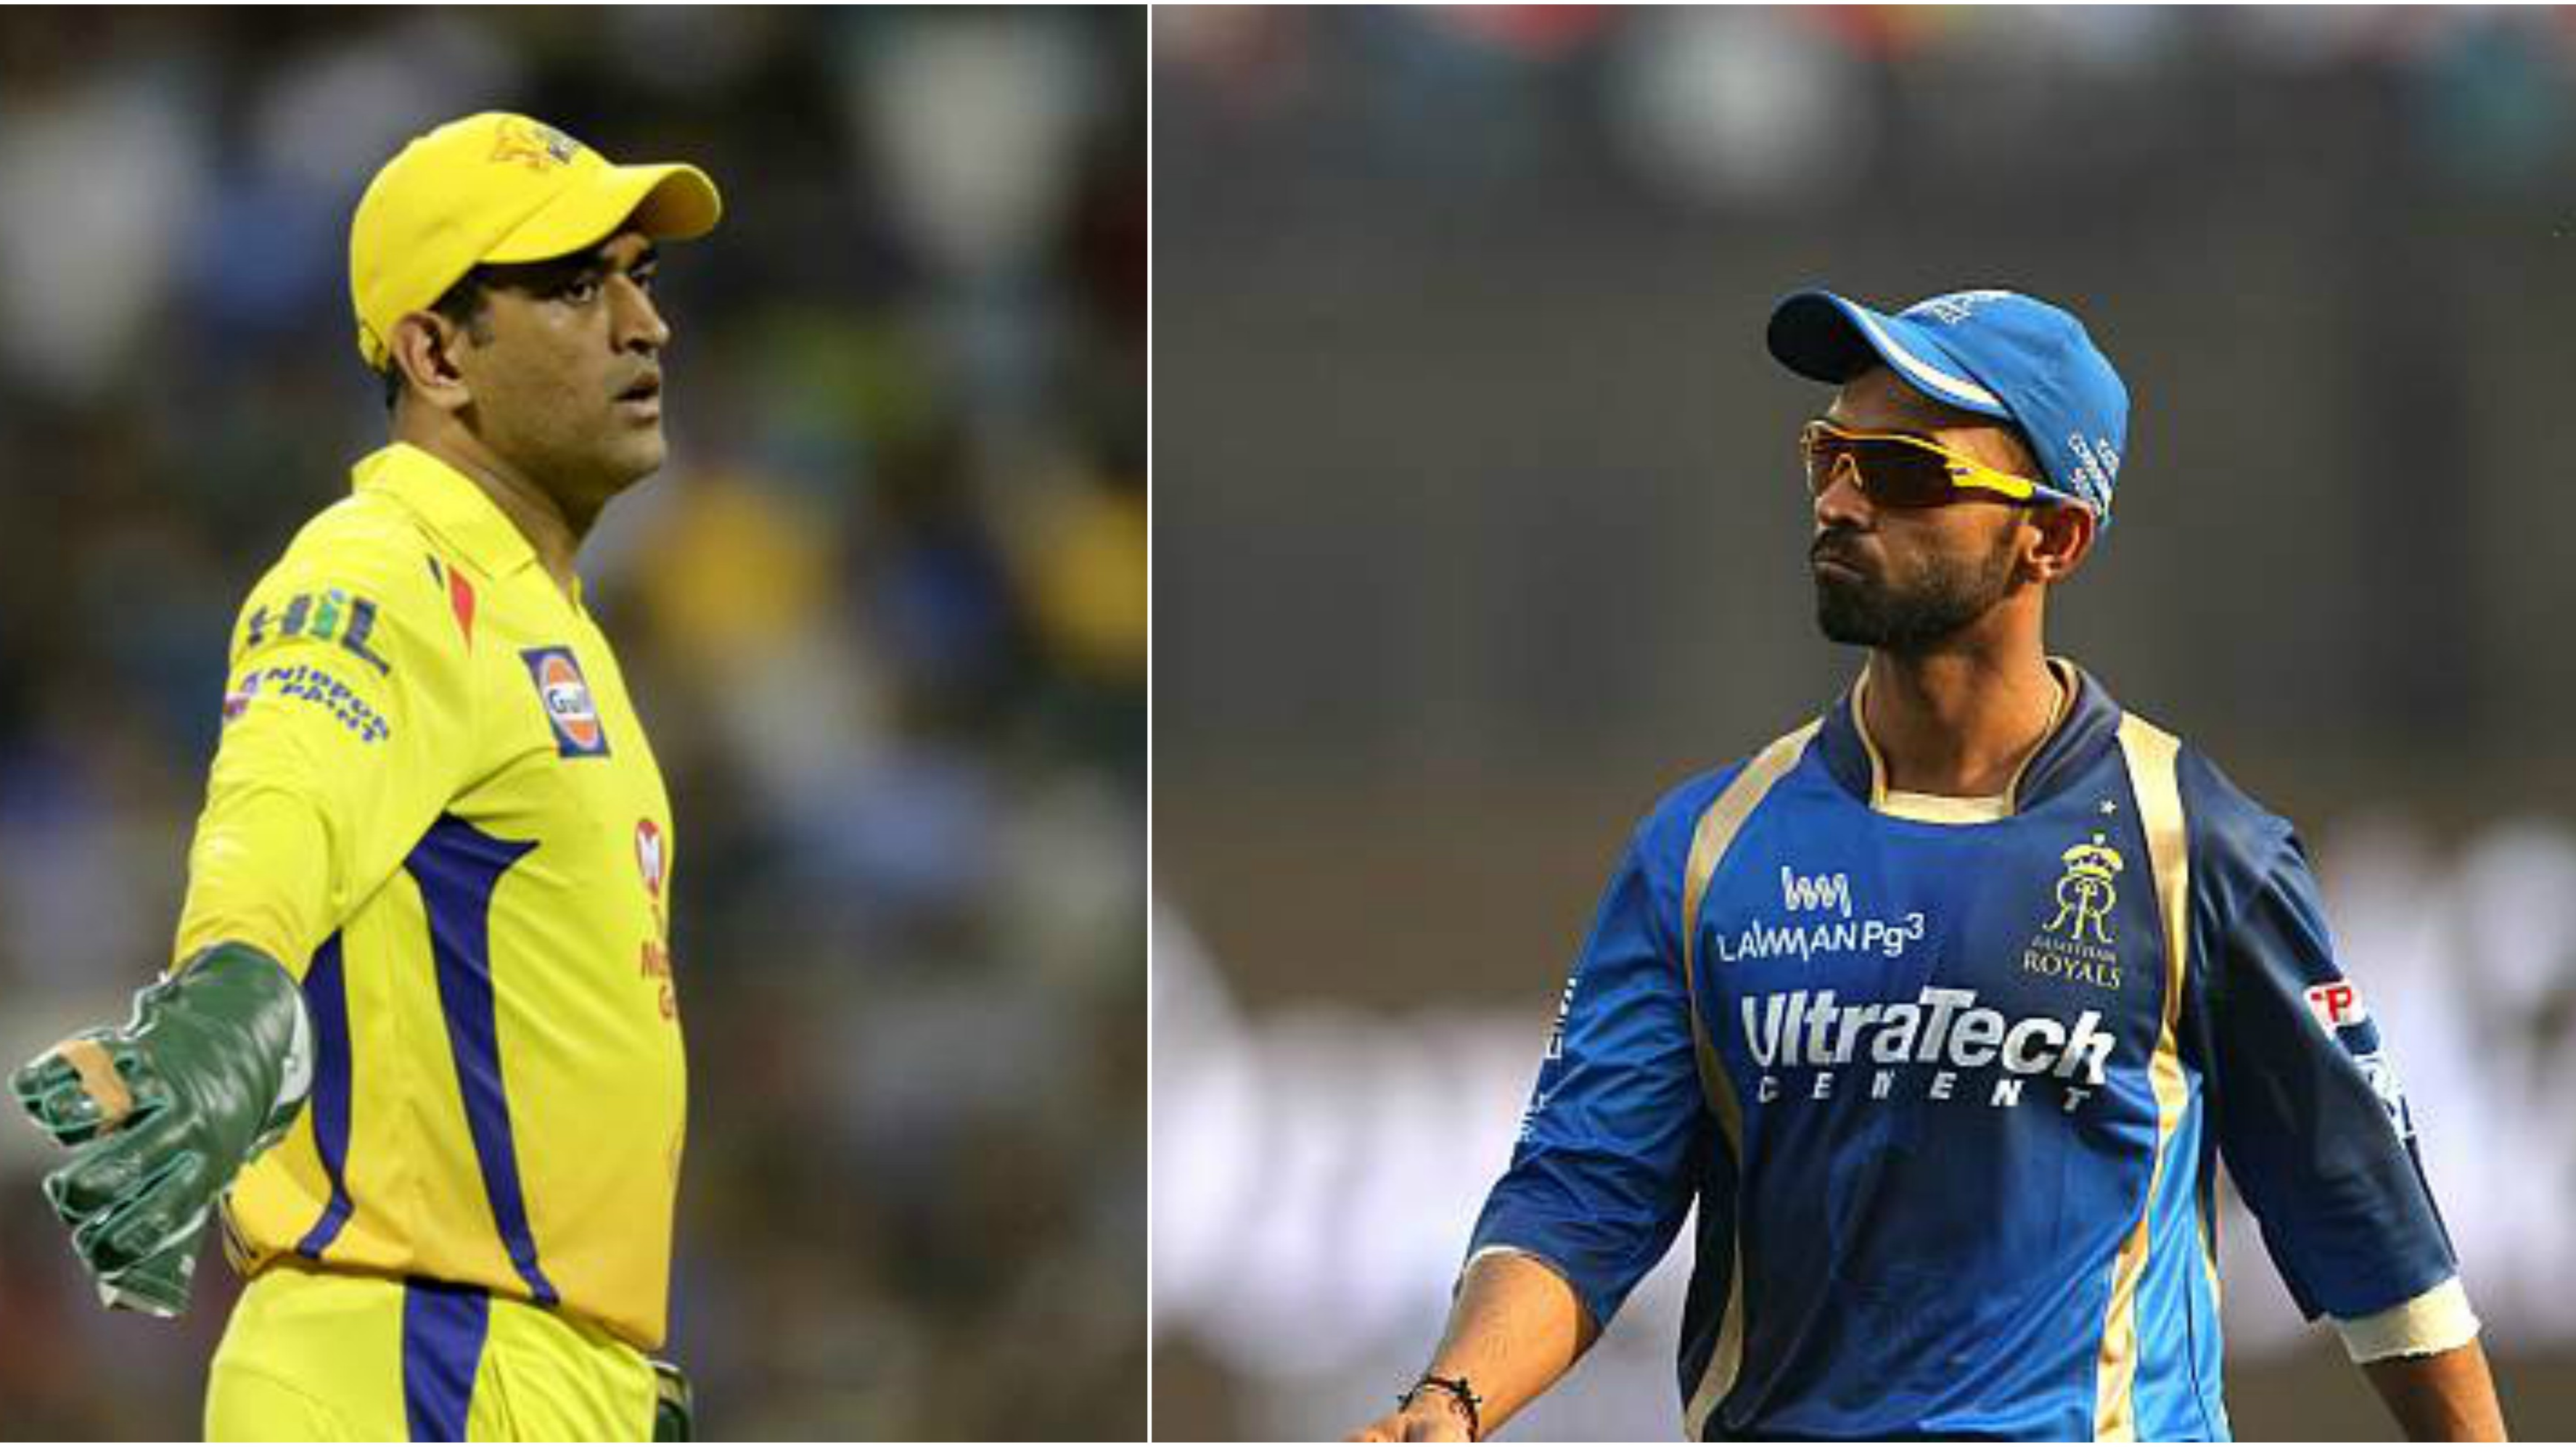 IPL 2018: Match 17, CSK vs RR: Teams set to resume rivalry